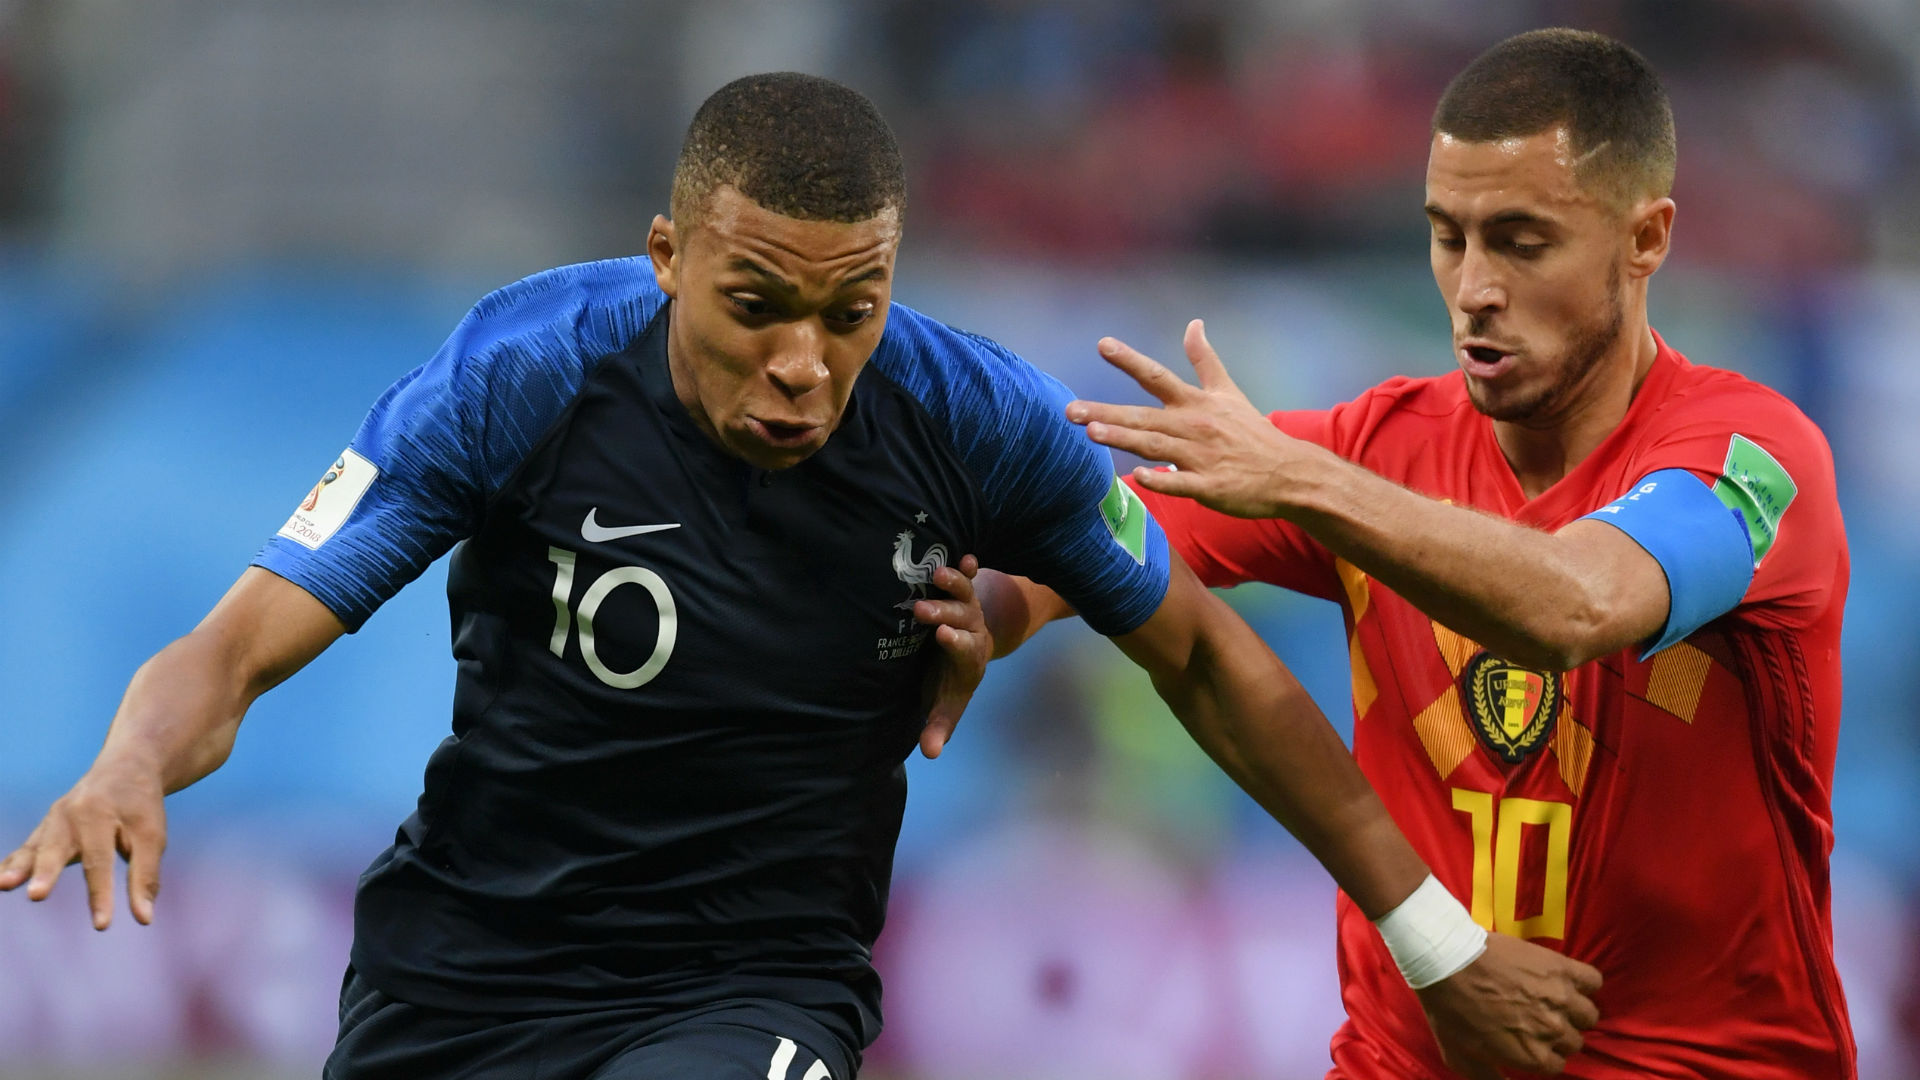 Hazard the best player I played against this year – Mbappe